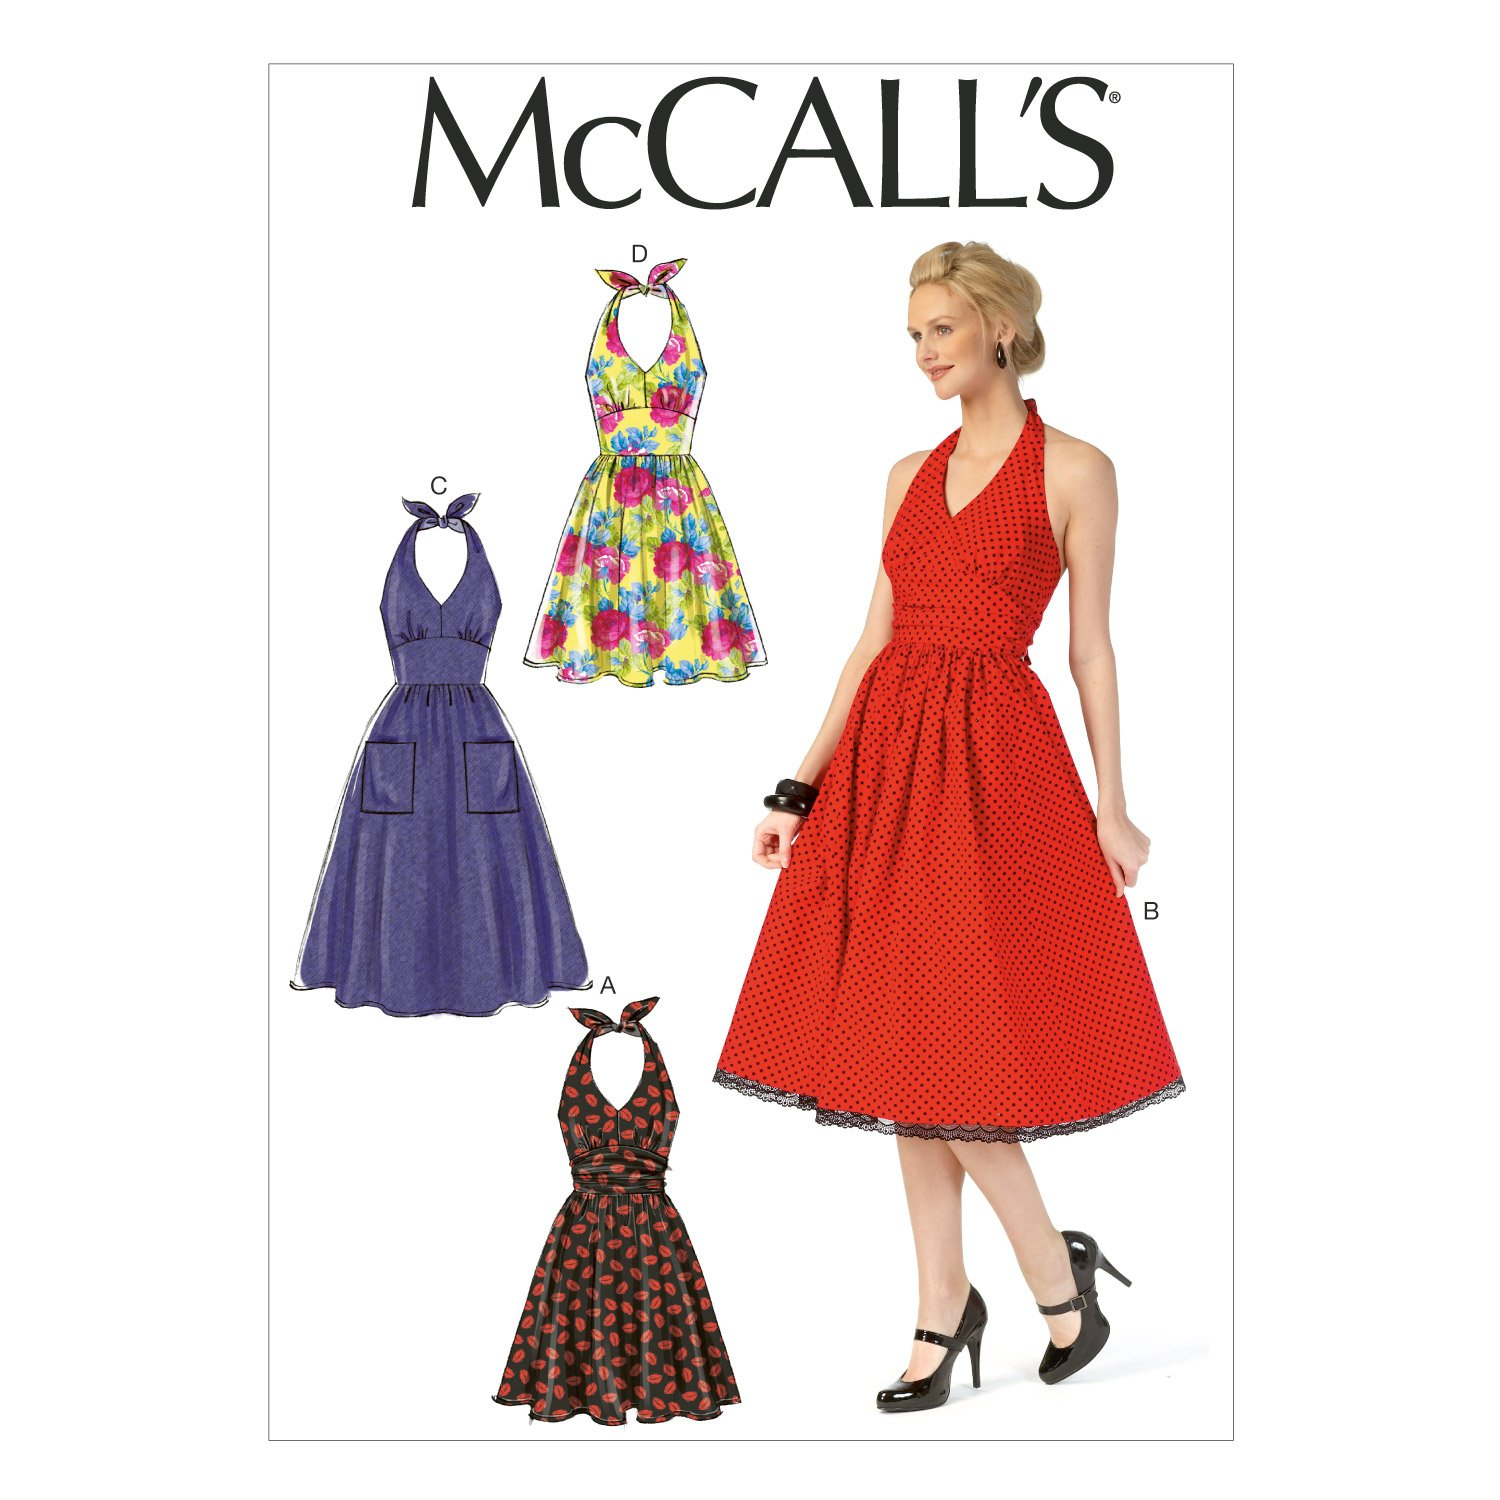 Amazon.com: McCall\'s Patterns M7157 Misses\' Dresses Sewing Template ...